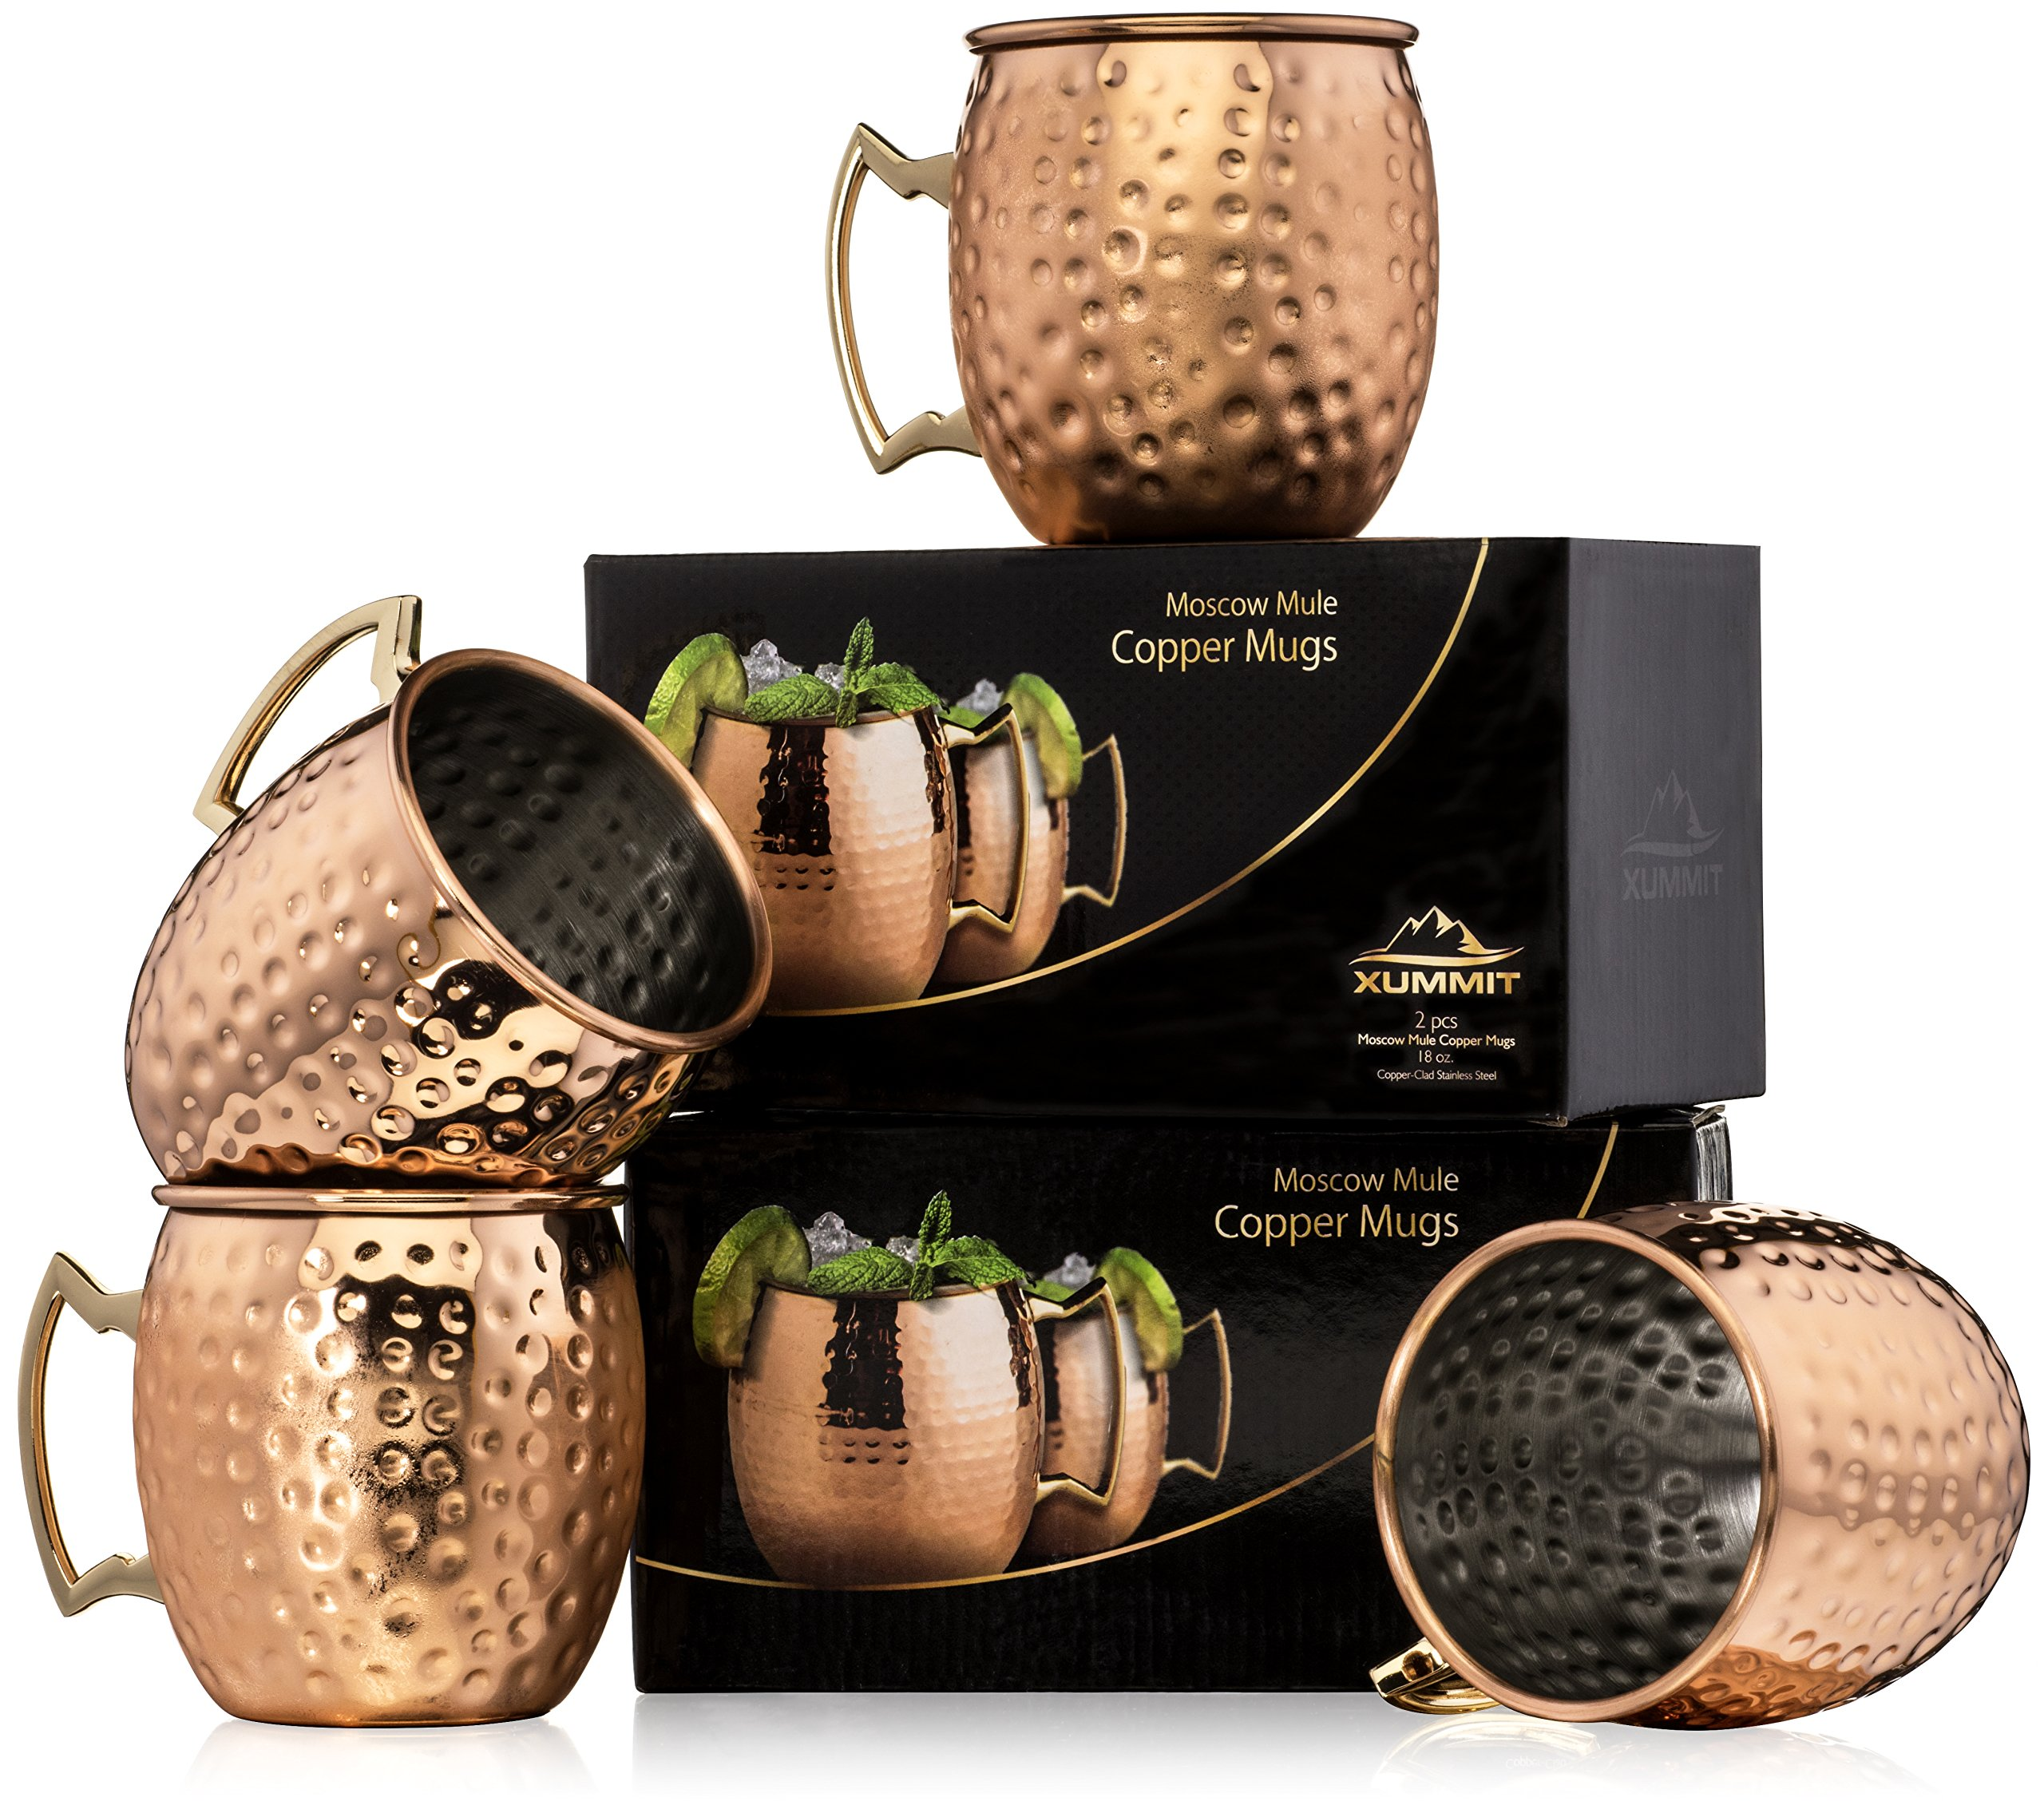 Xummit Stunning Hammered Moscow Mule Copper Mug / Cup with Golden-Hued Handle - 18 Oz (Set of 4)